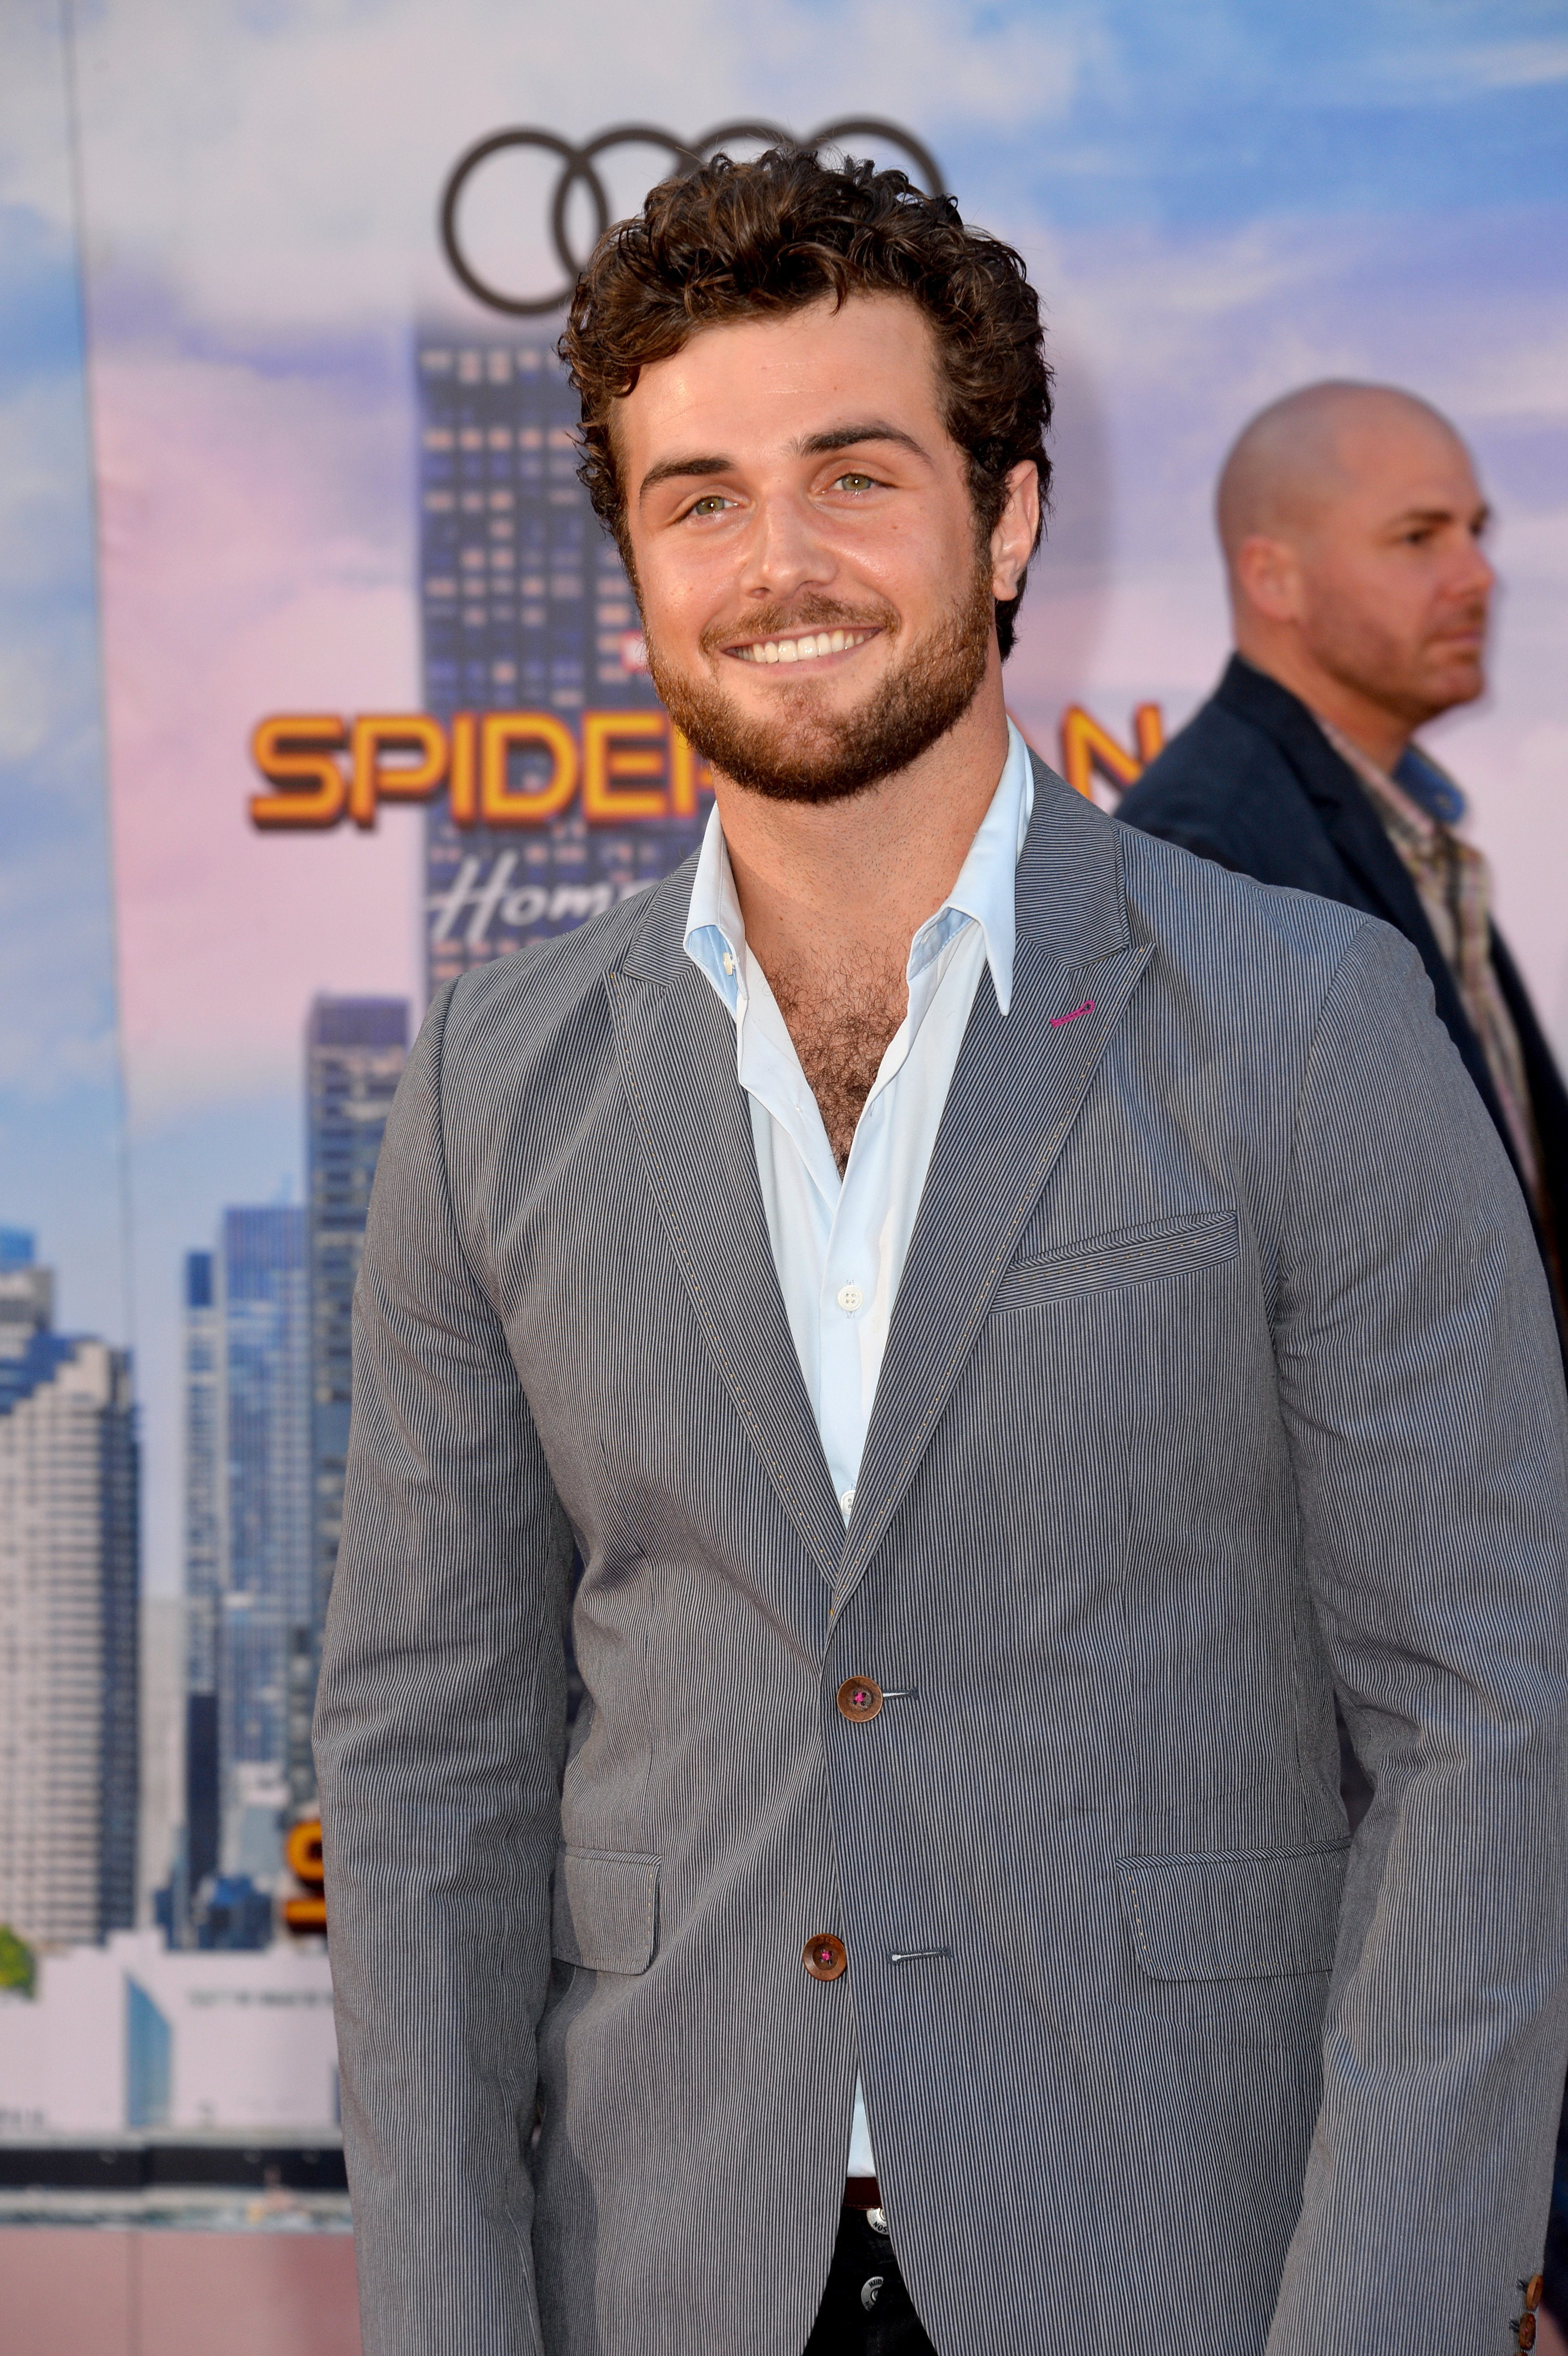 """Beau Mirchoff at the world premiere of """"Spider-Man: Homecoming"""" at the TCL Chinese Theatre in Hollywood, Los Angeles on June 28, 2017   Photo: Shutterstock/Jaguar PS"""